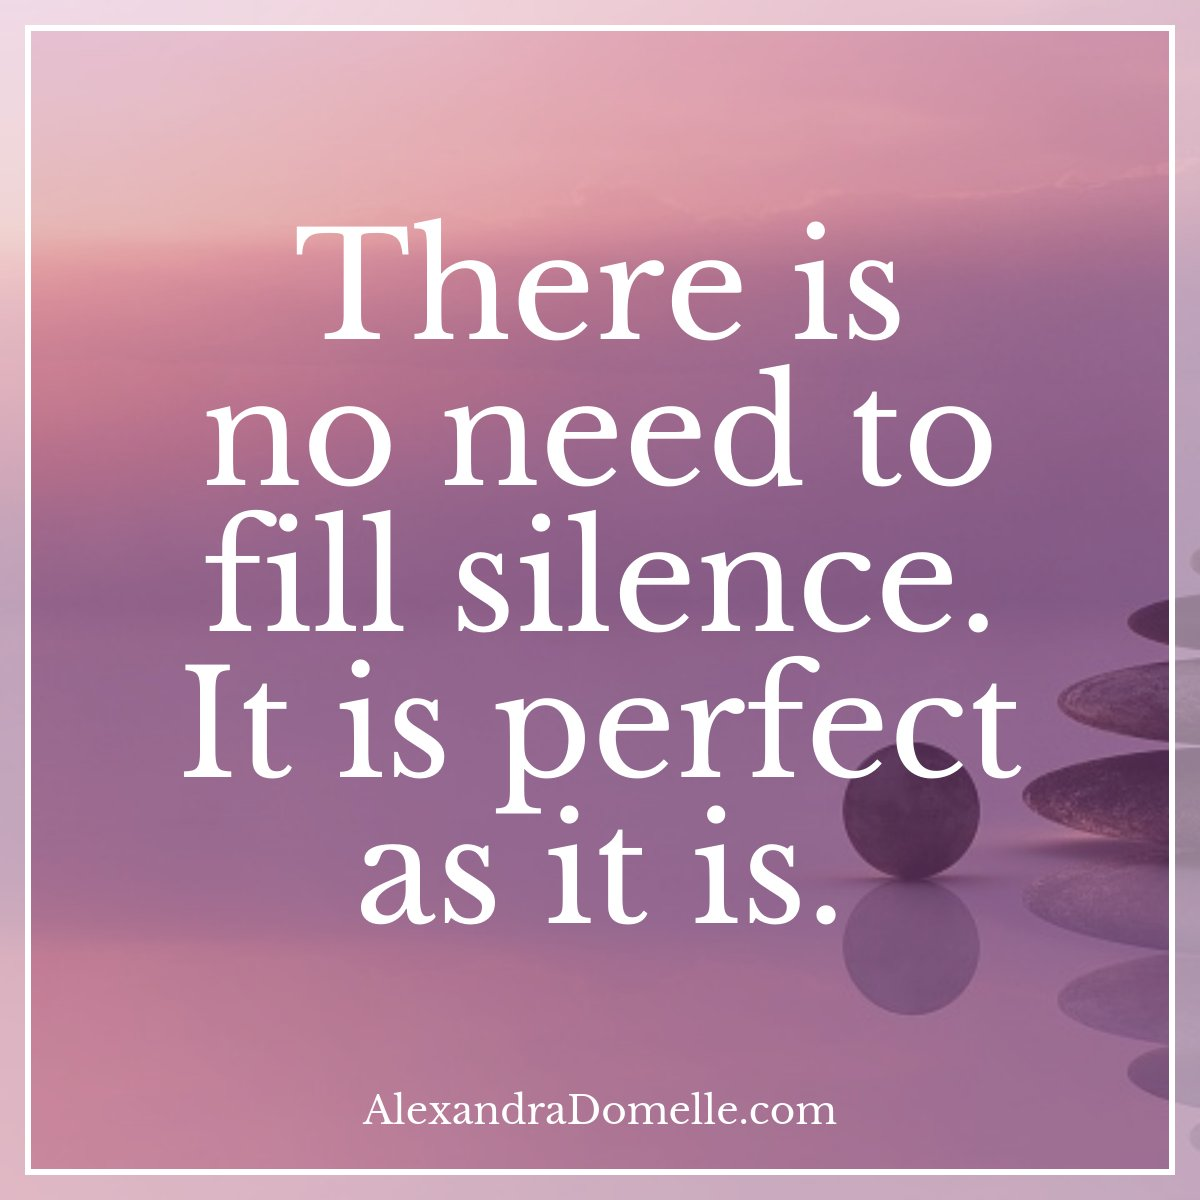 There is no need to fill silence. It is perfect as it is. - Alexandra Domelle #IQRTG #Meditation #Mindfulness RT @gary_hensel<br>http://pic.twitter.com/dvtgWimkSi